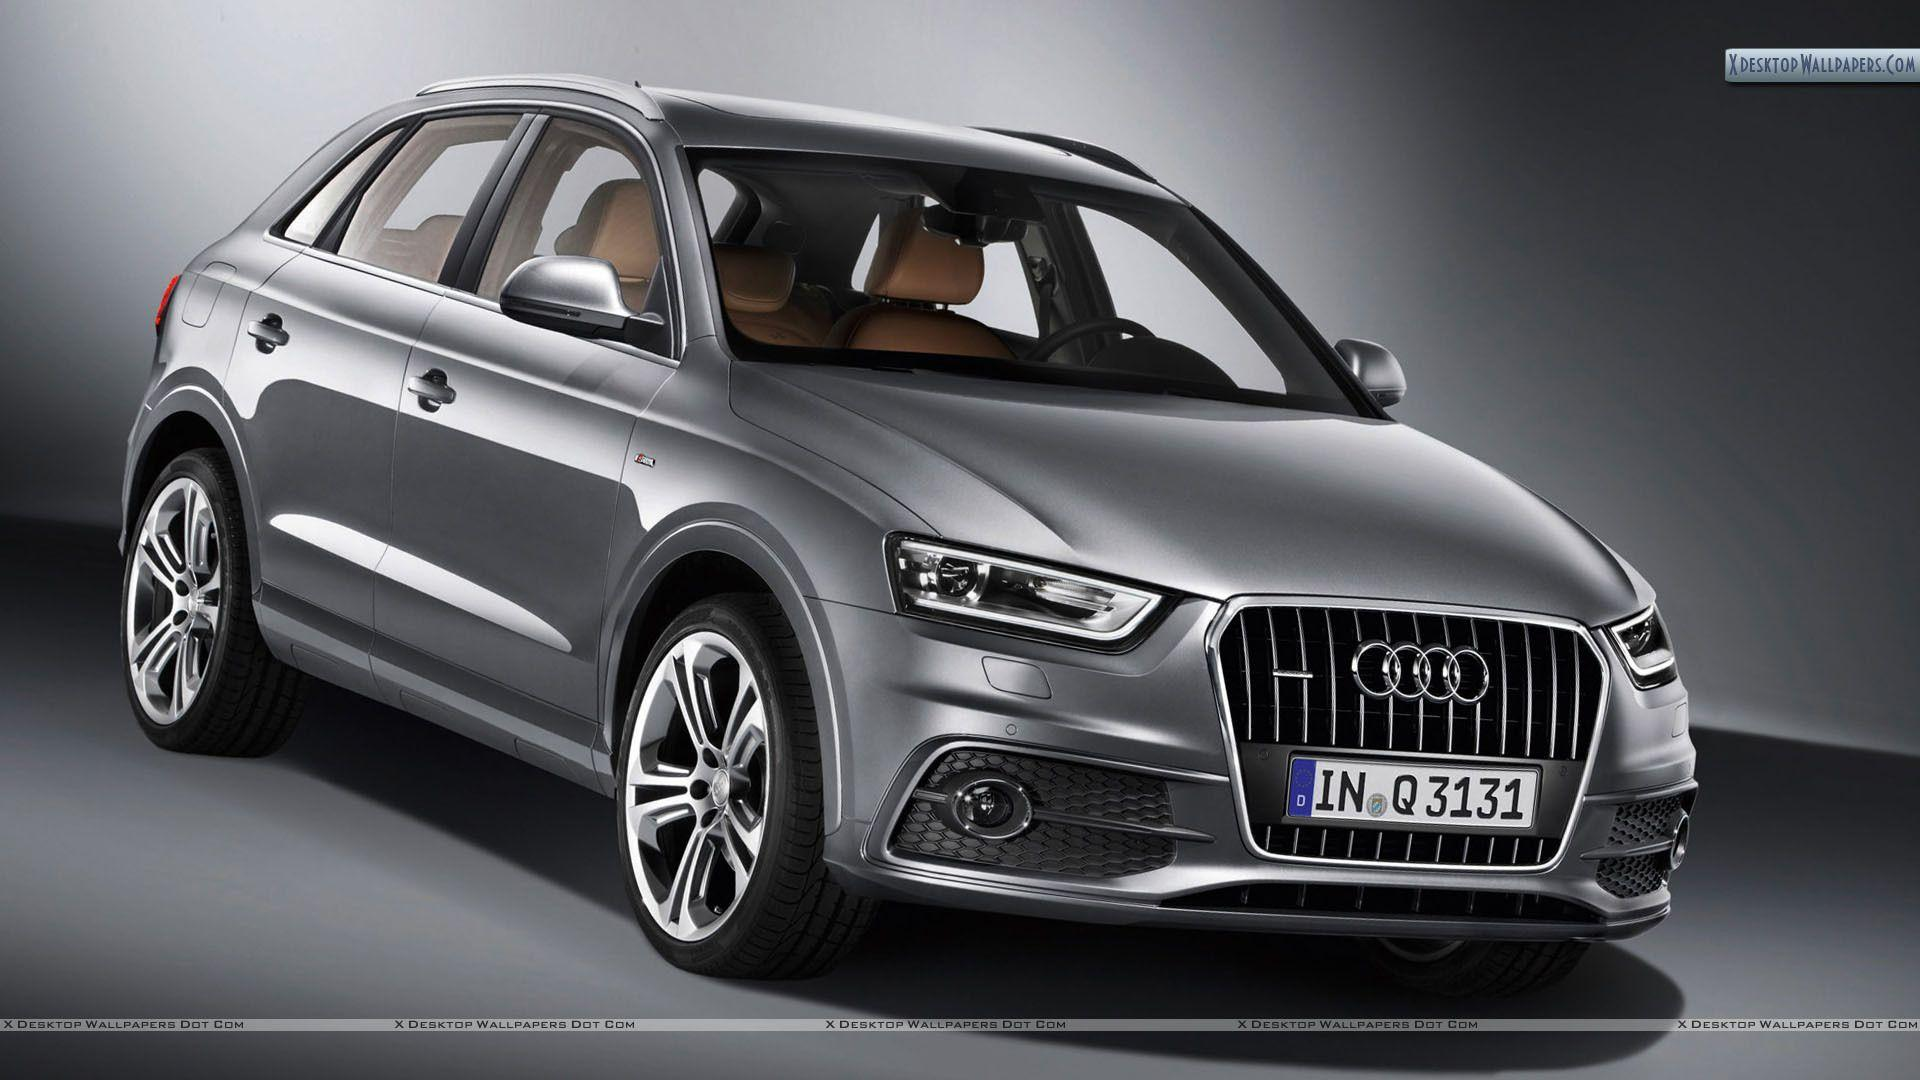 Audi q3 car on the road wallpapers and image